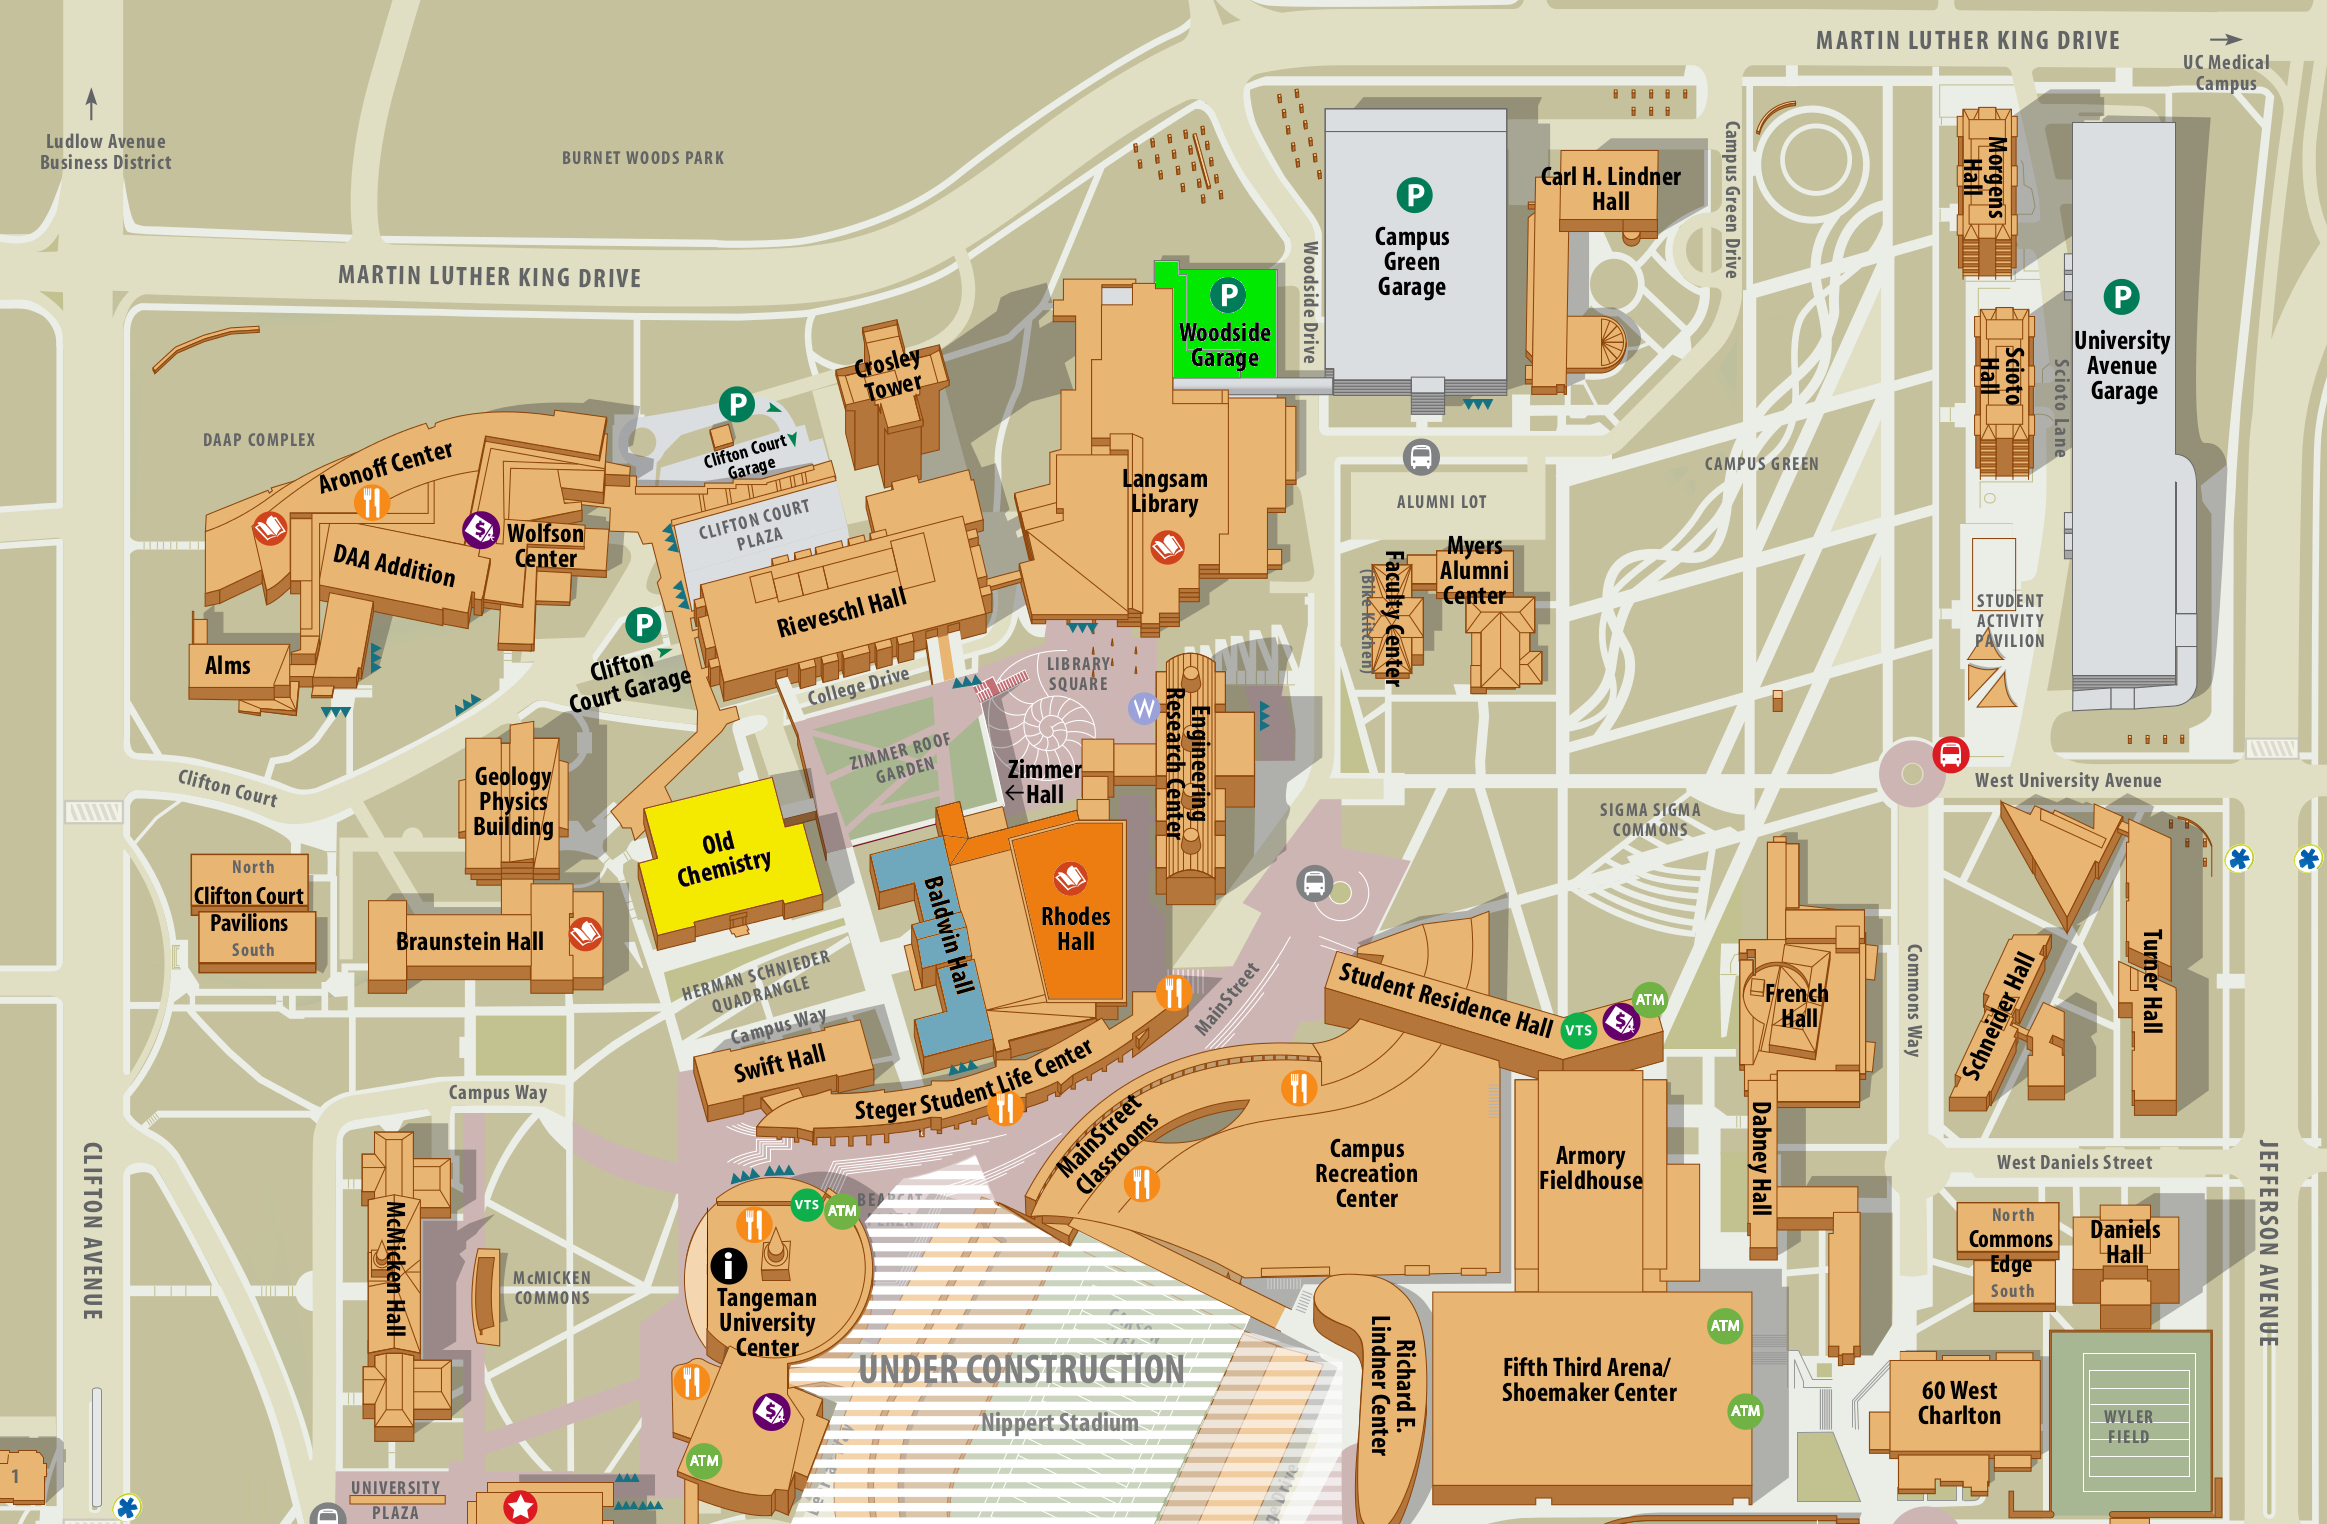 university of cincinnati west campus map Uc West Campus Map Ecna Icpc 2019